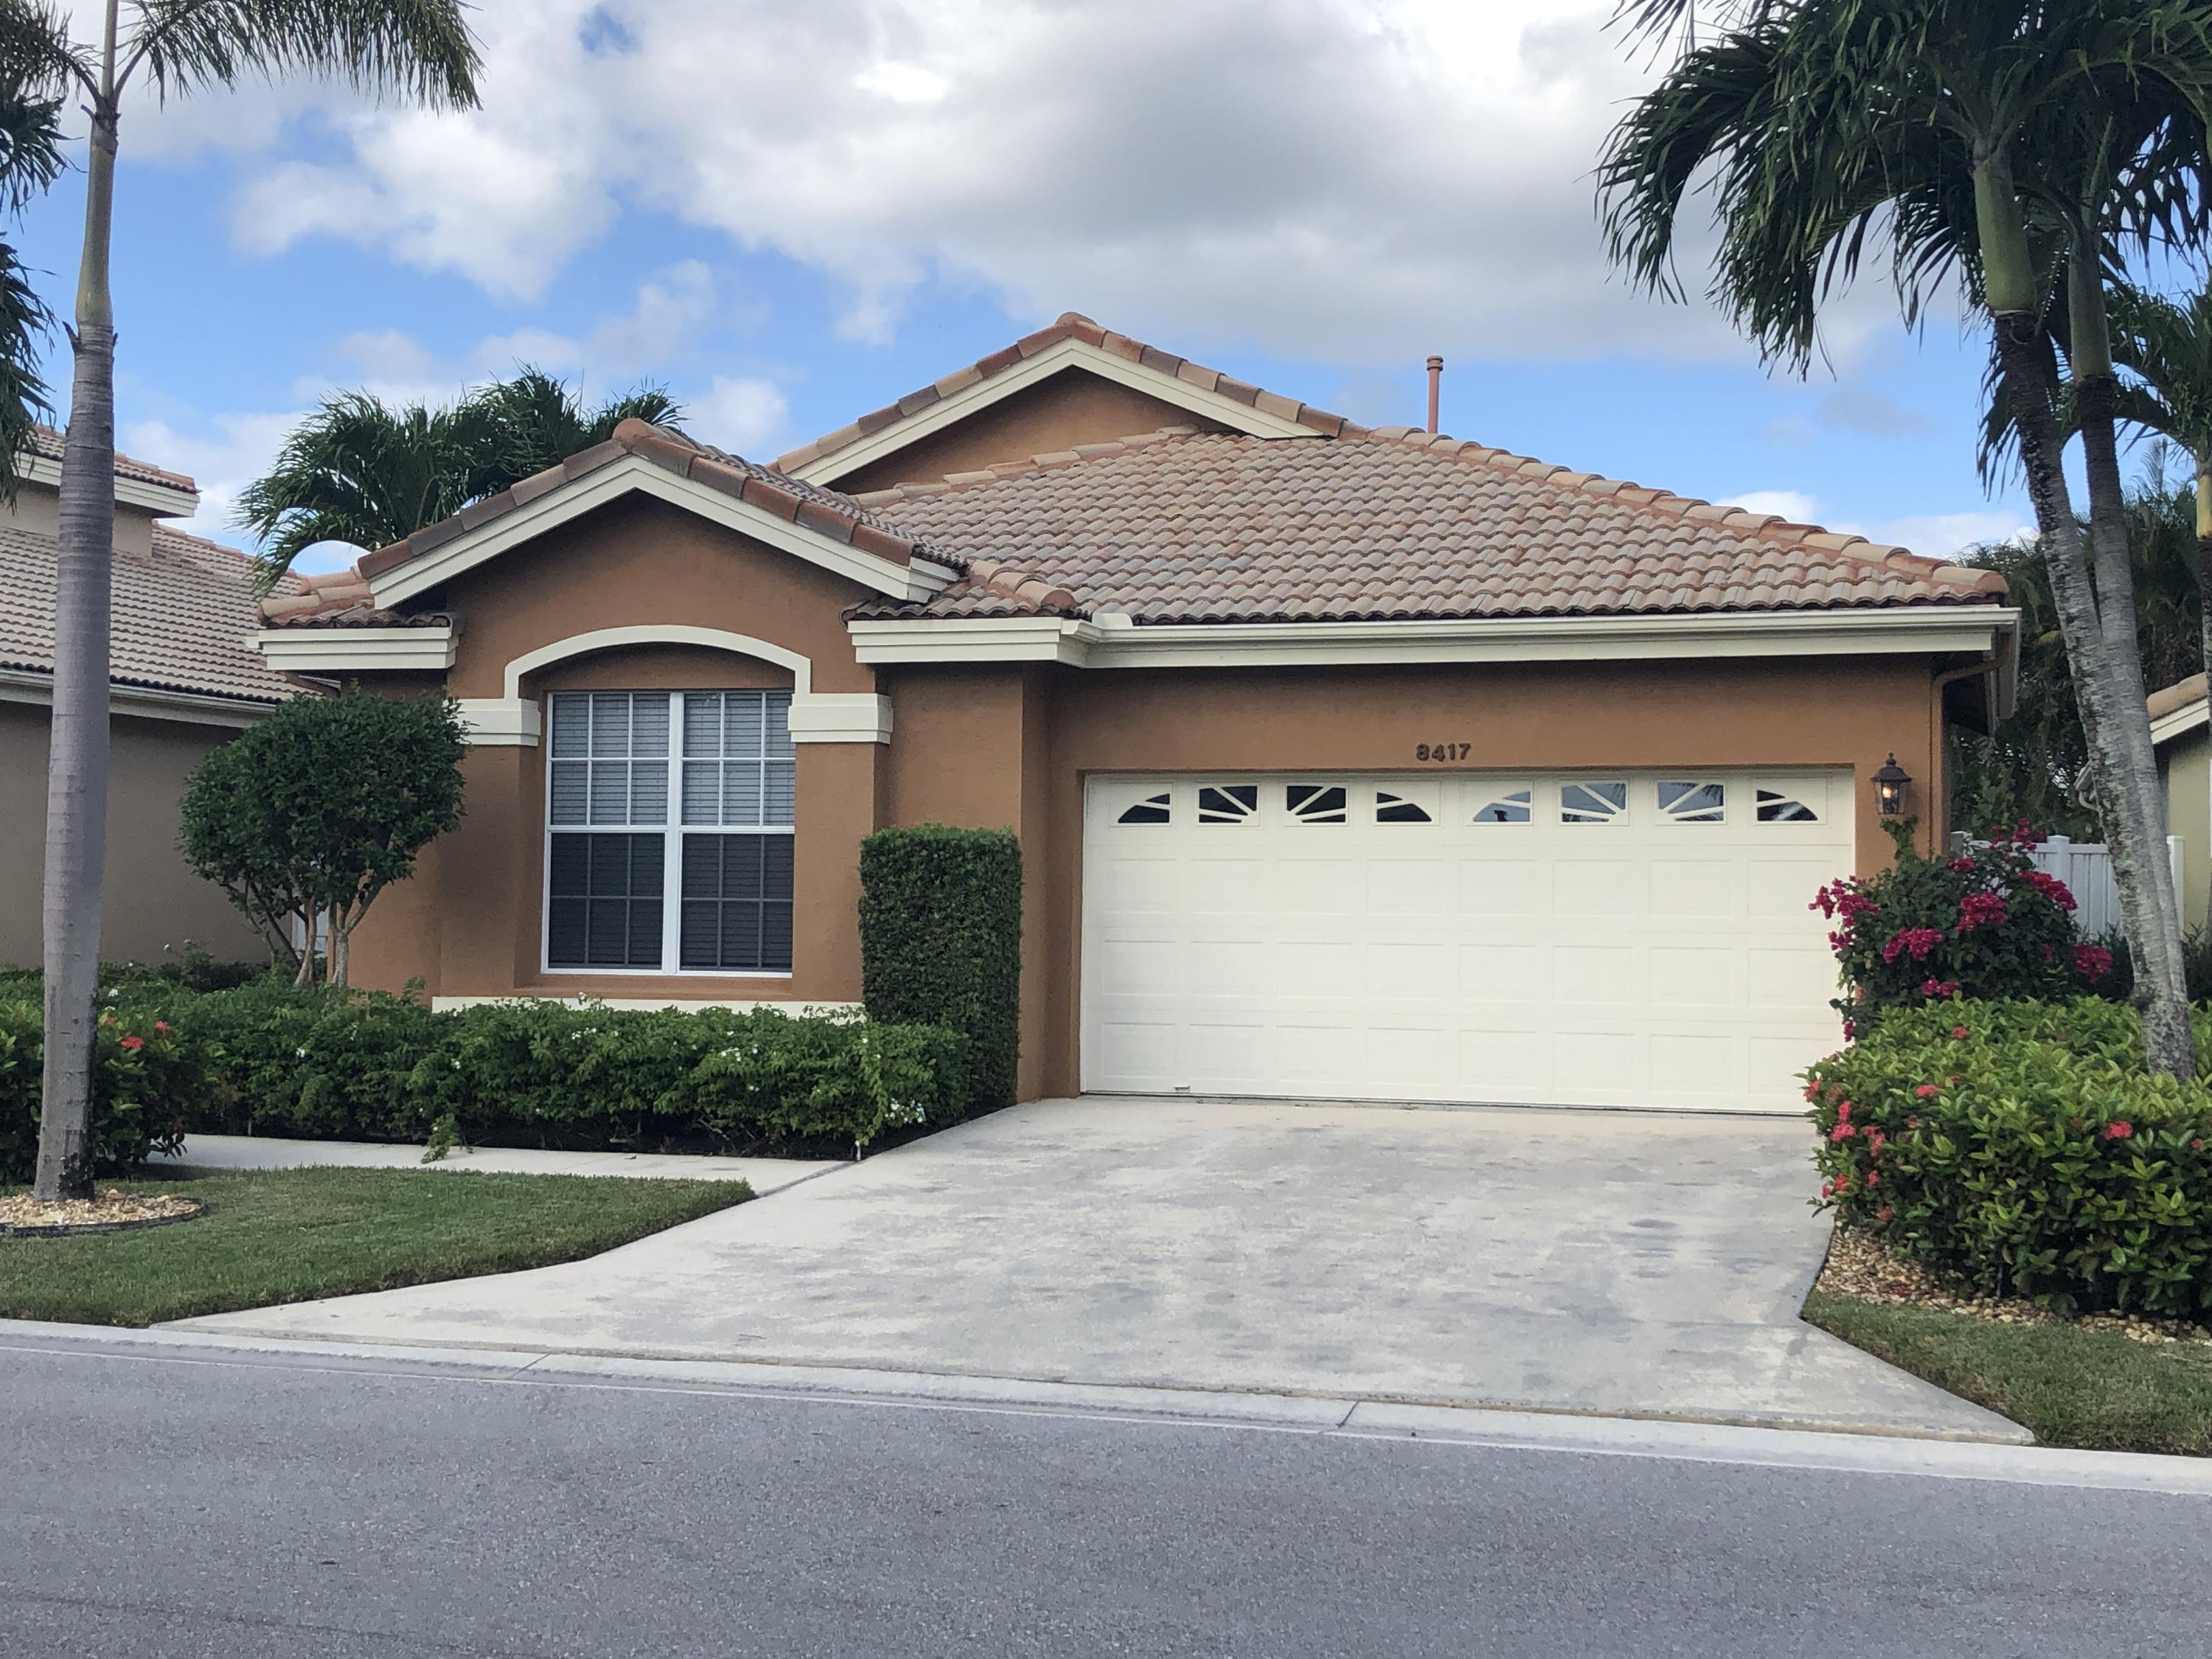 Details for 8417 Quail Meadow Way, West Palm Beach, FL 33412